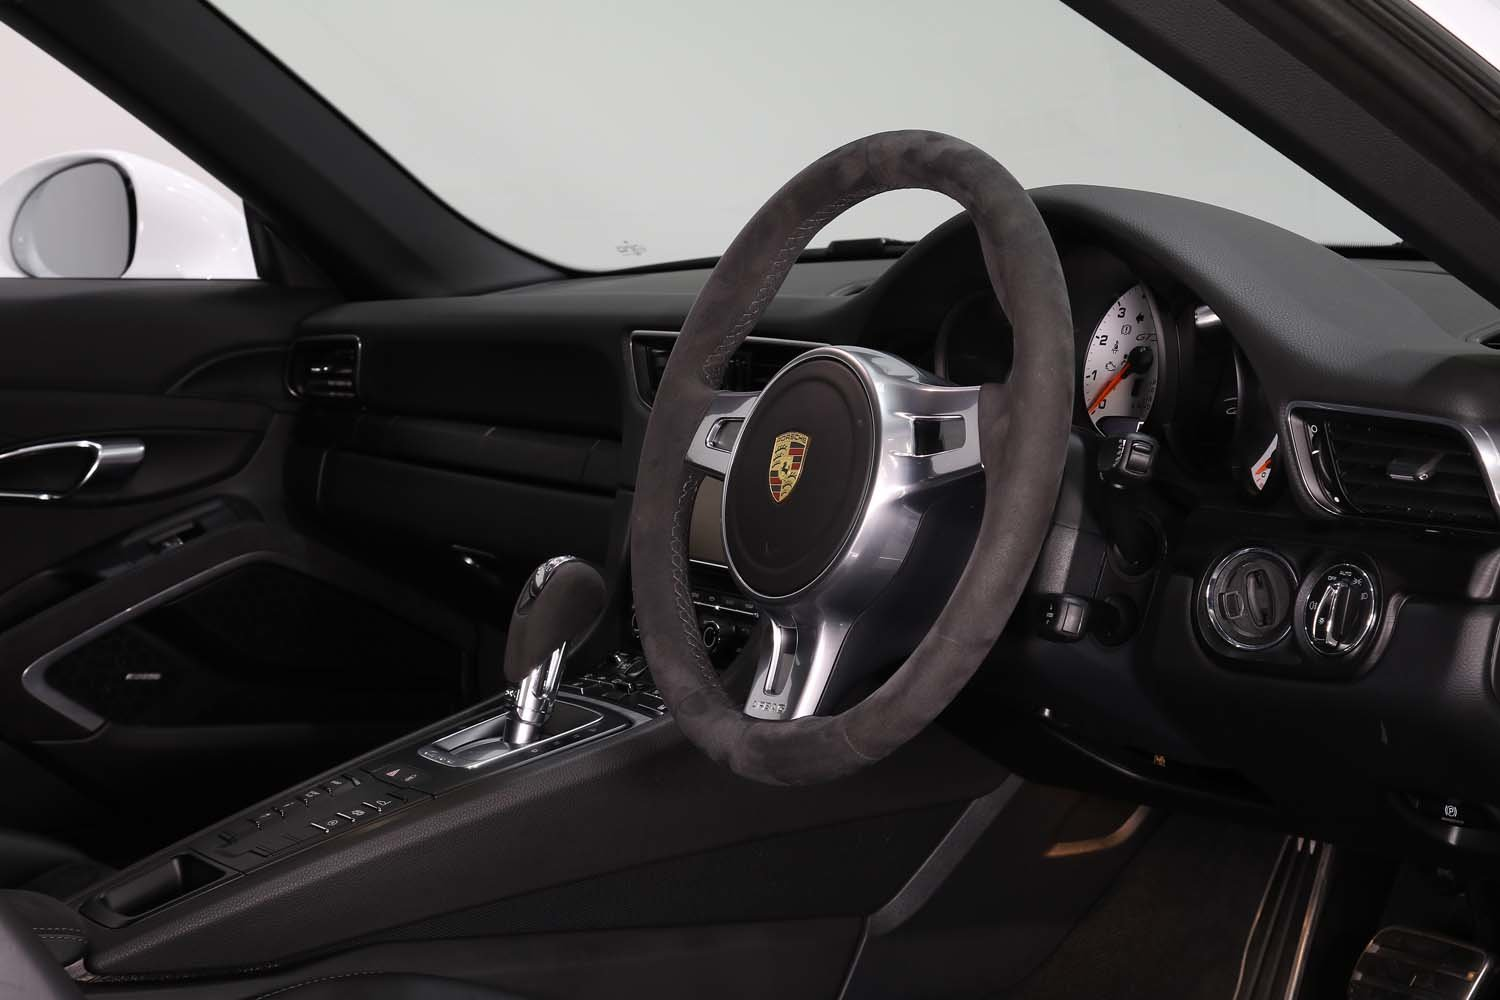 2015 15 65 PORSCHE 911 CARRERA GTS 3.8 [991] PDK For Sale (picture 5 of 6)